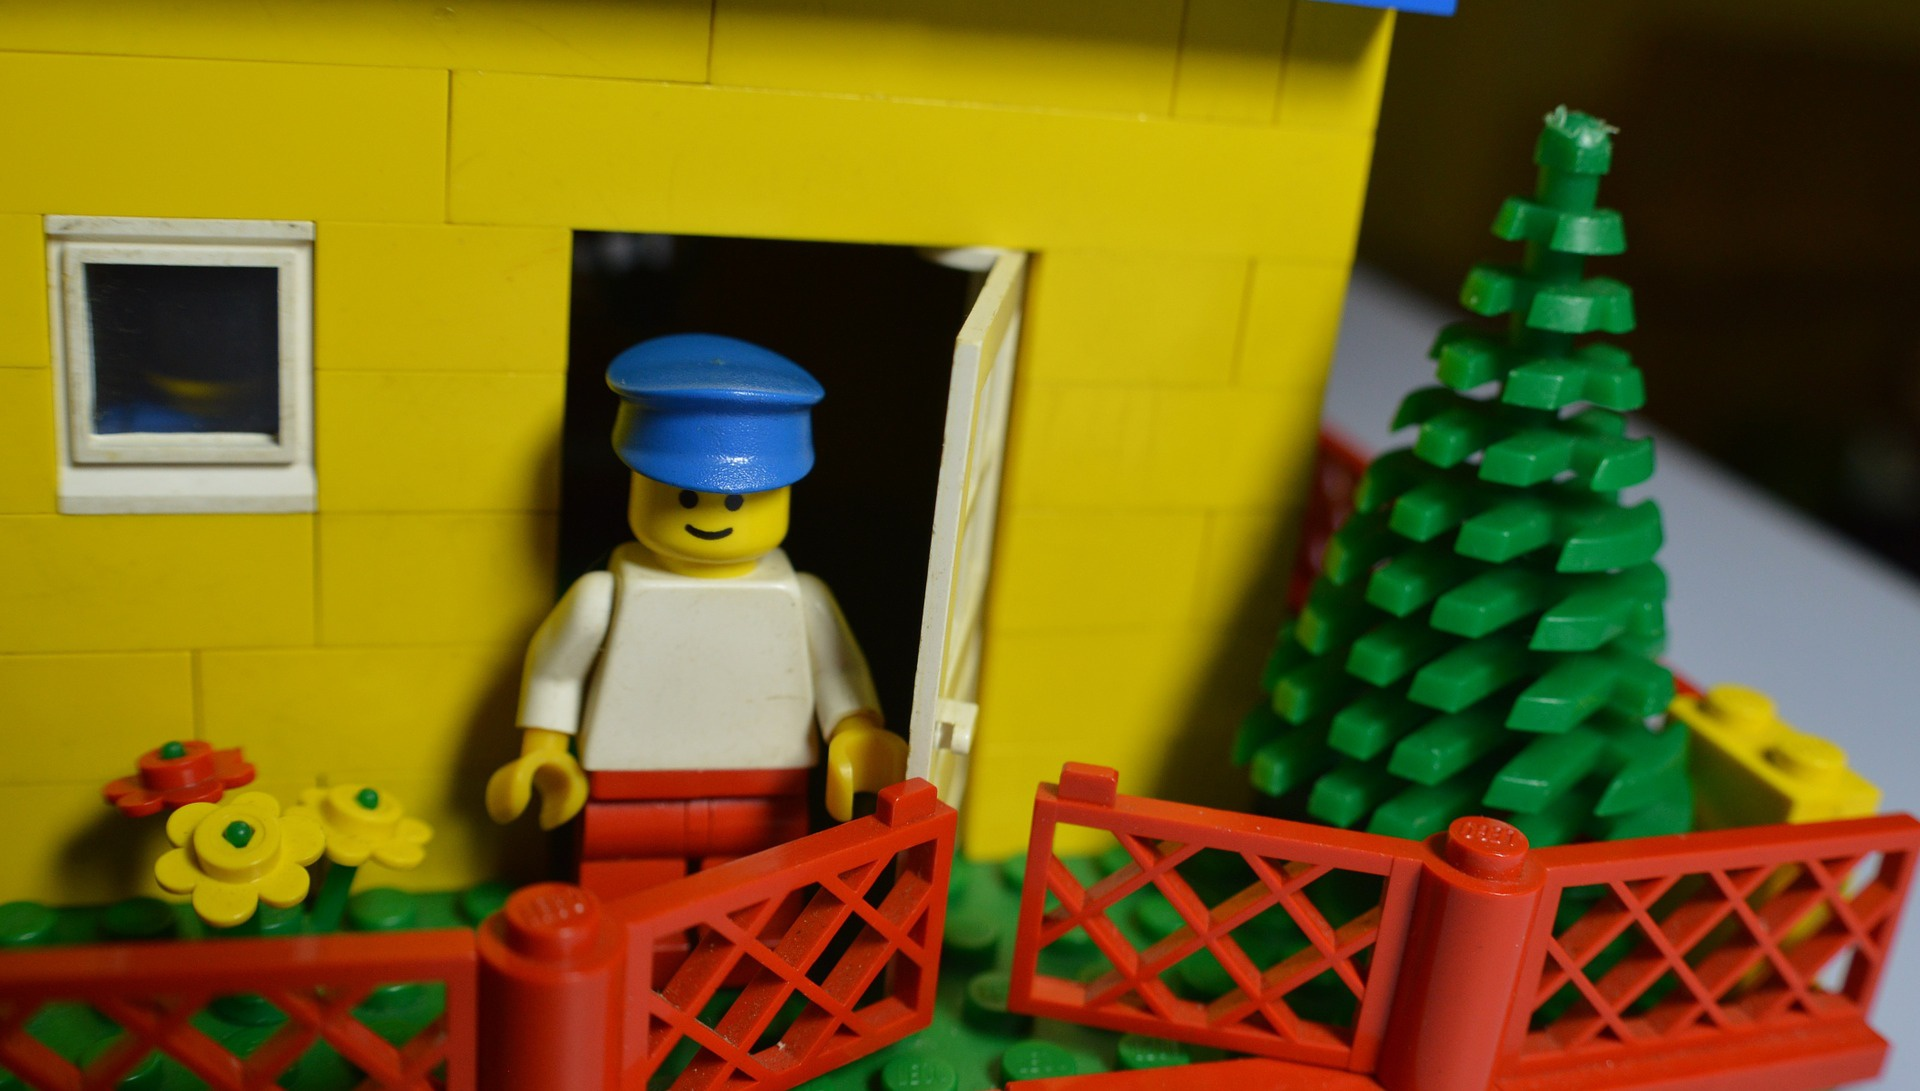 Billy, a lego character standing in the doorway of his lego house overlooked the lego garden